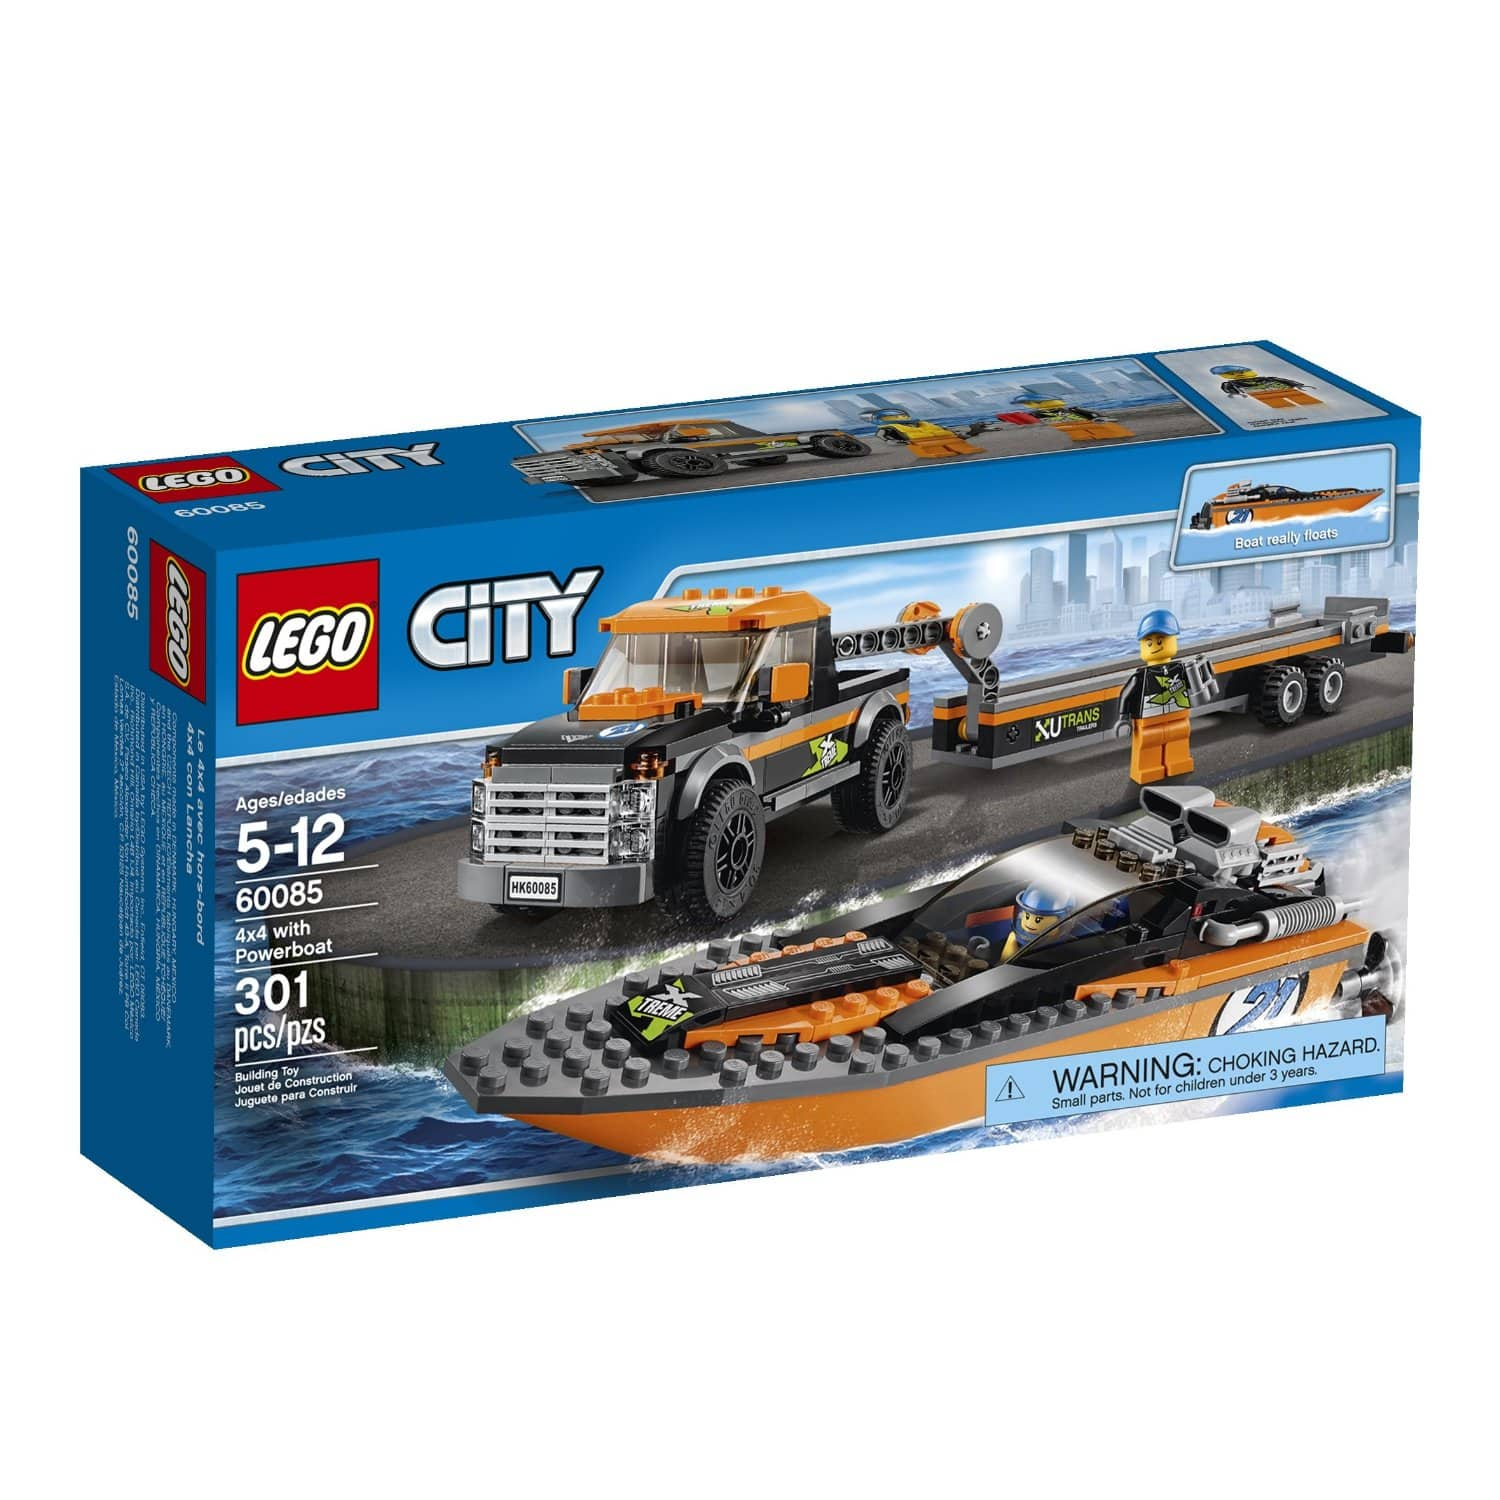 LEGO City: Great Vehicles 4x4 w/ Powerboat  $21 + Free In-Store Pickup